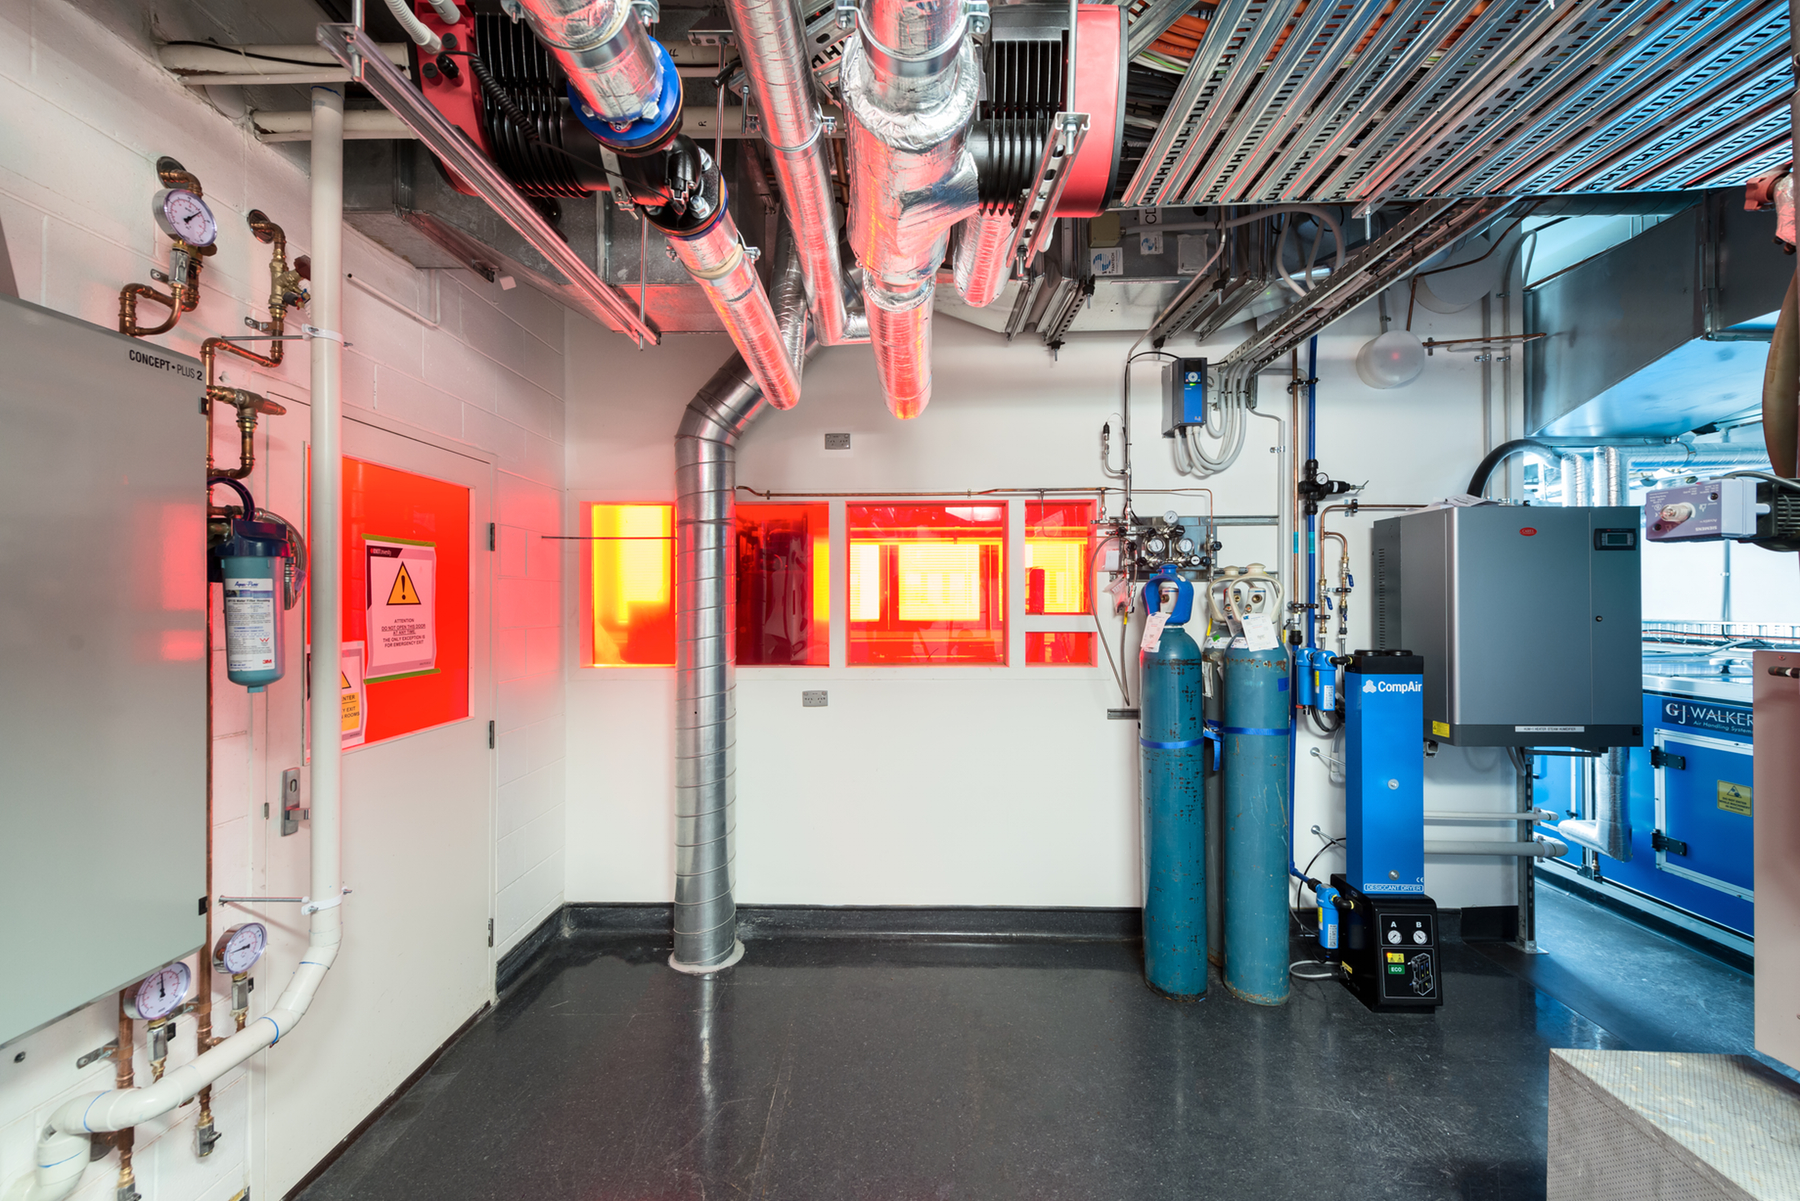 RMIT University – Low Temperature Co-Fired Ceramics (LTCC) Facility